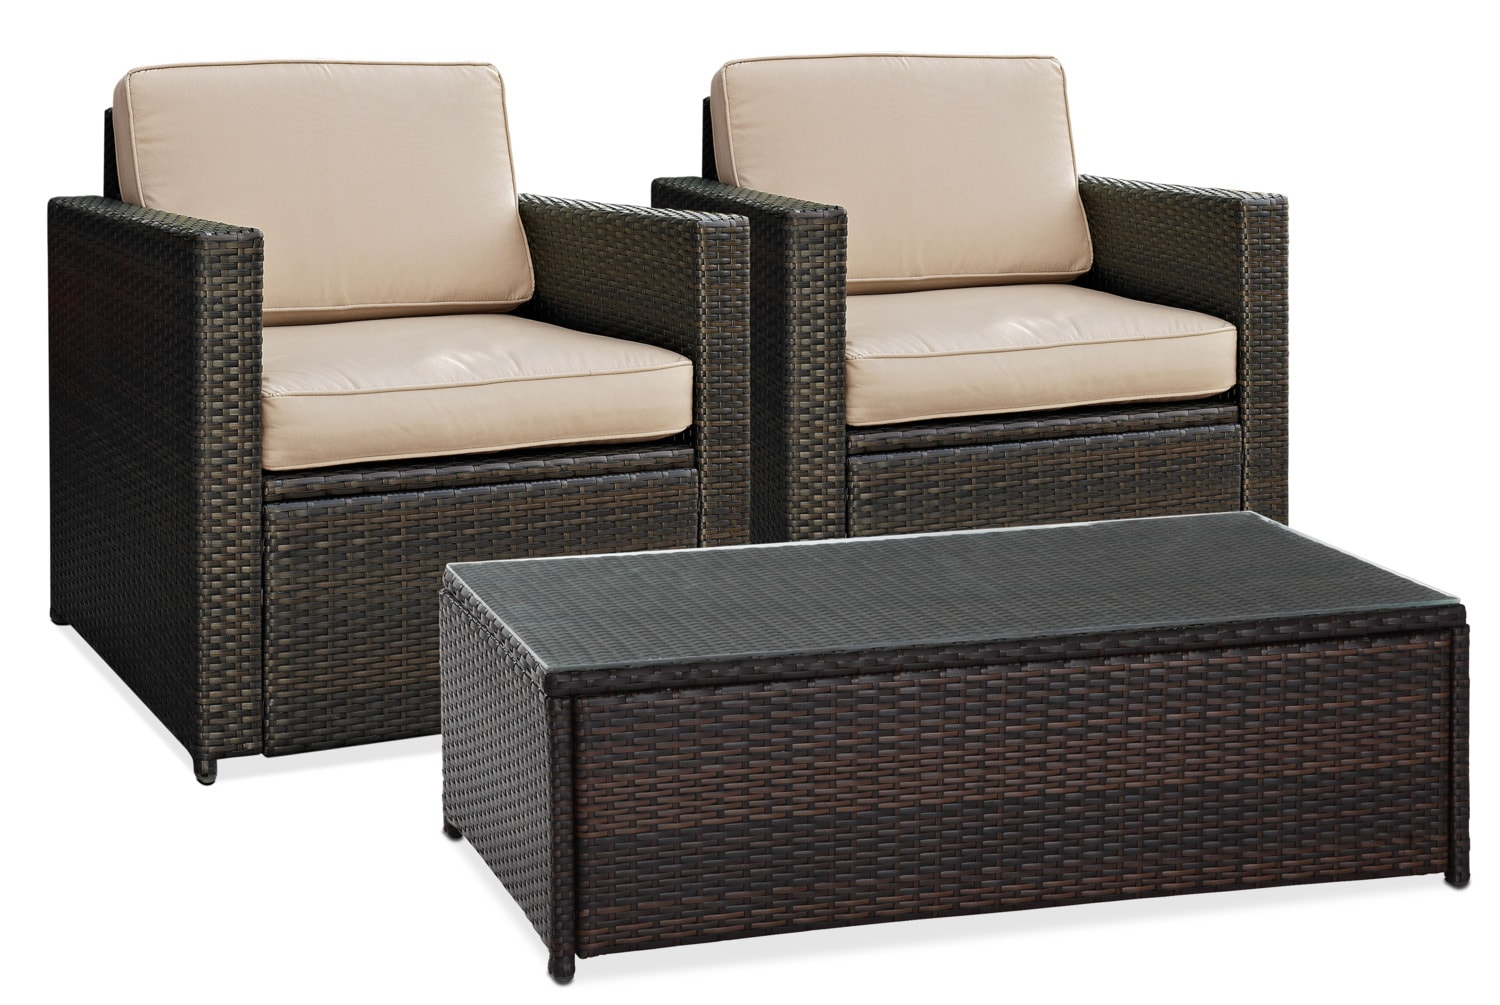 Outdoor Furniture - Aldo 2 Outdoor Chairs and Coffee Table Set - Brown